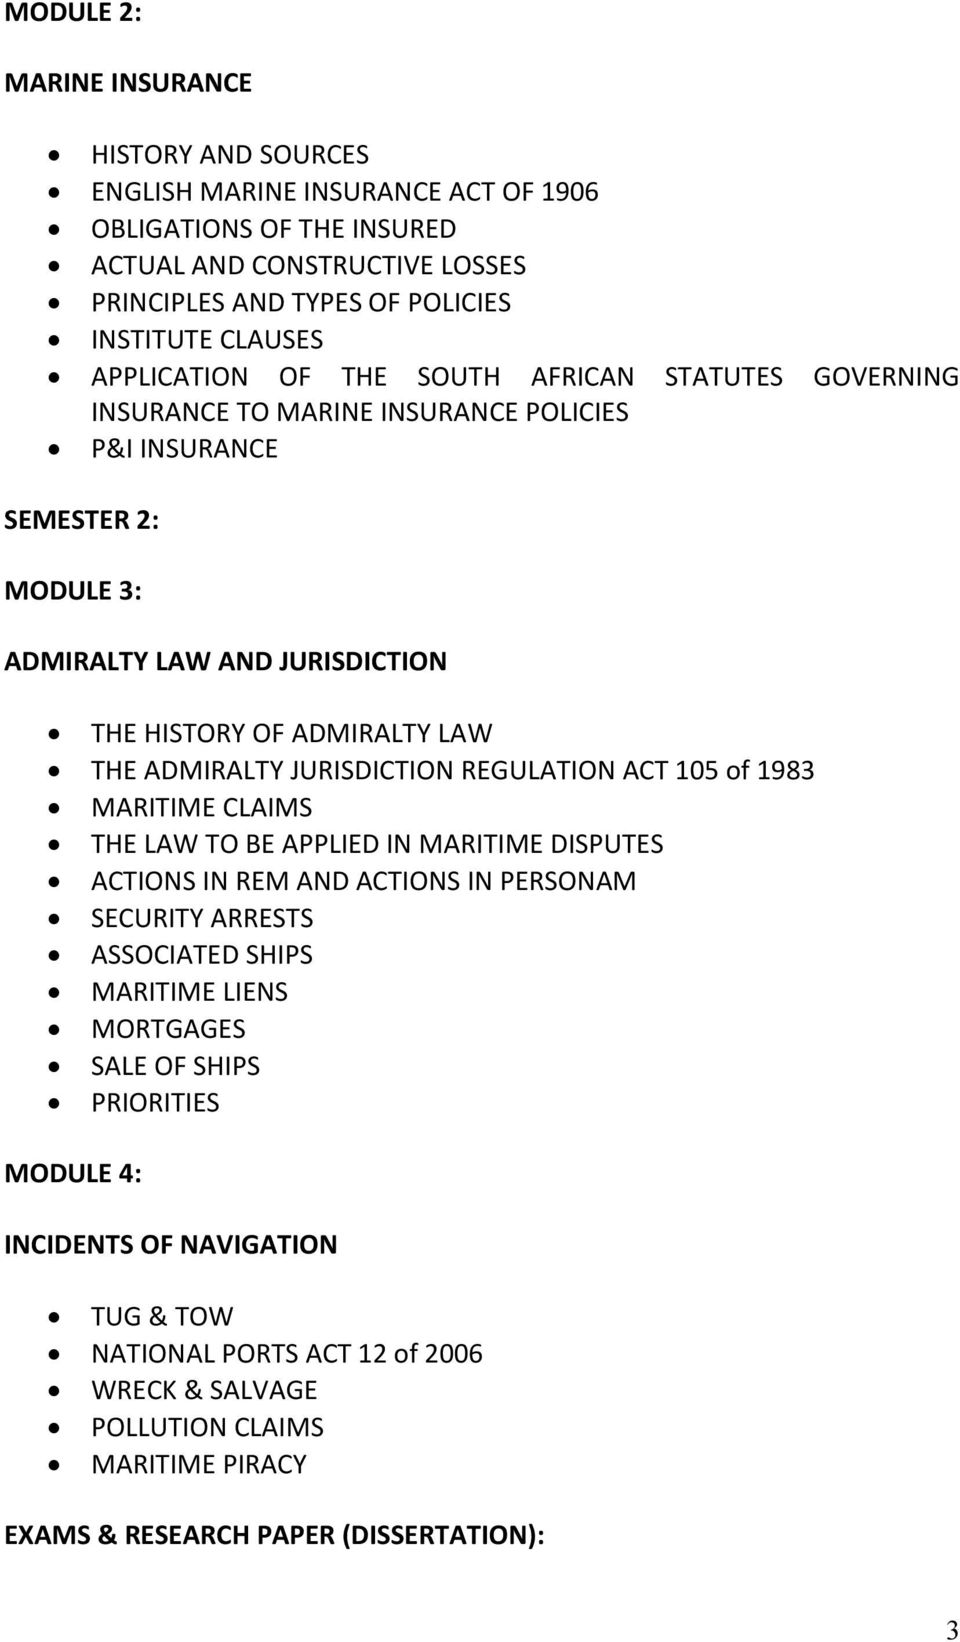 ADMIRALTY JURISDICTION REGULATION ACT 105 of 1983 MARITIME CLAIMS THE LAW TO BE APPLIED IN MARITIME DISPUTES ACTIONS IN REM AND ACTIONS IN PERSONAM SECURITY ARRESTS ASSOCIATED SHIPS MARITIME